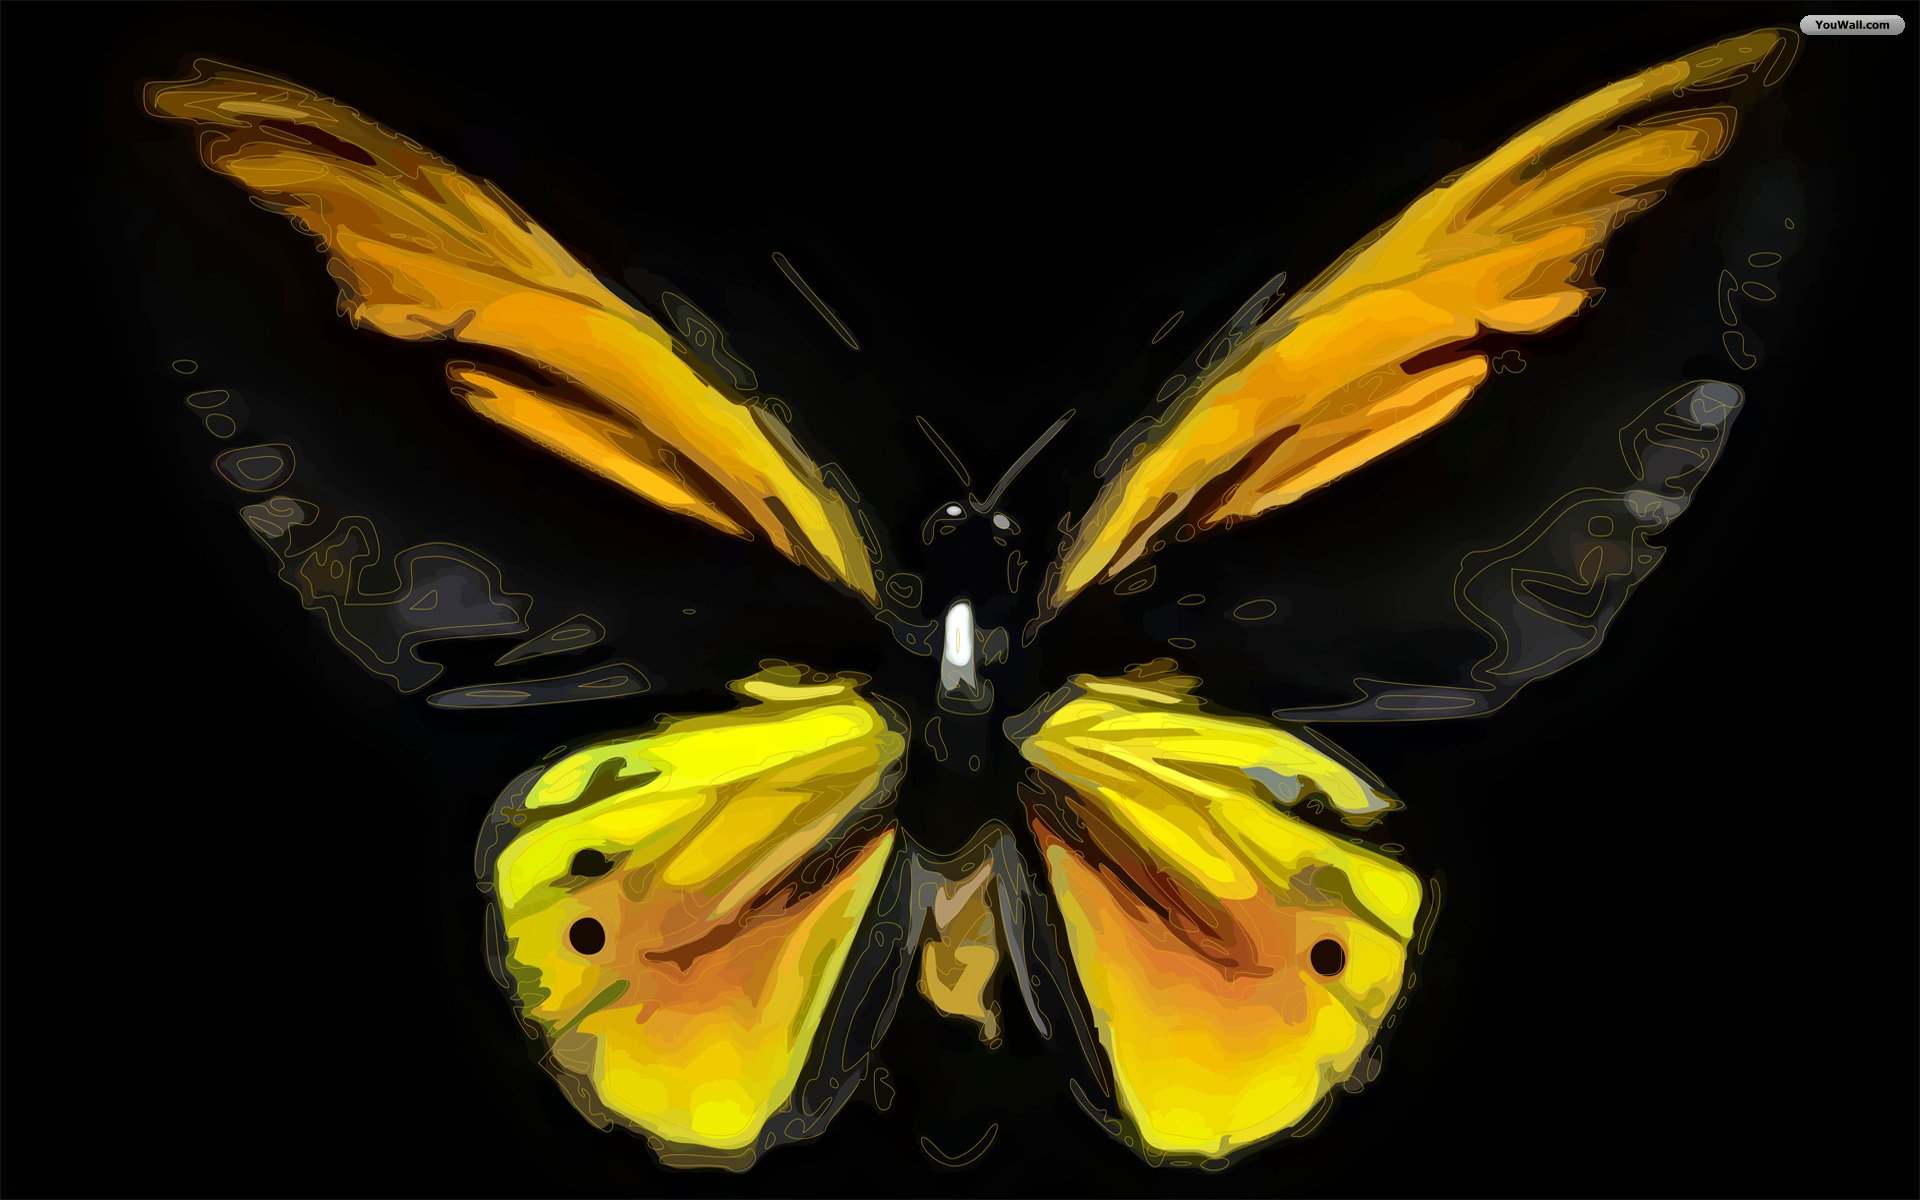 YouWall   Butterfly Wallpaper   wallpaperwallpapersfree wallpaper 1920x1200